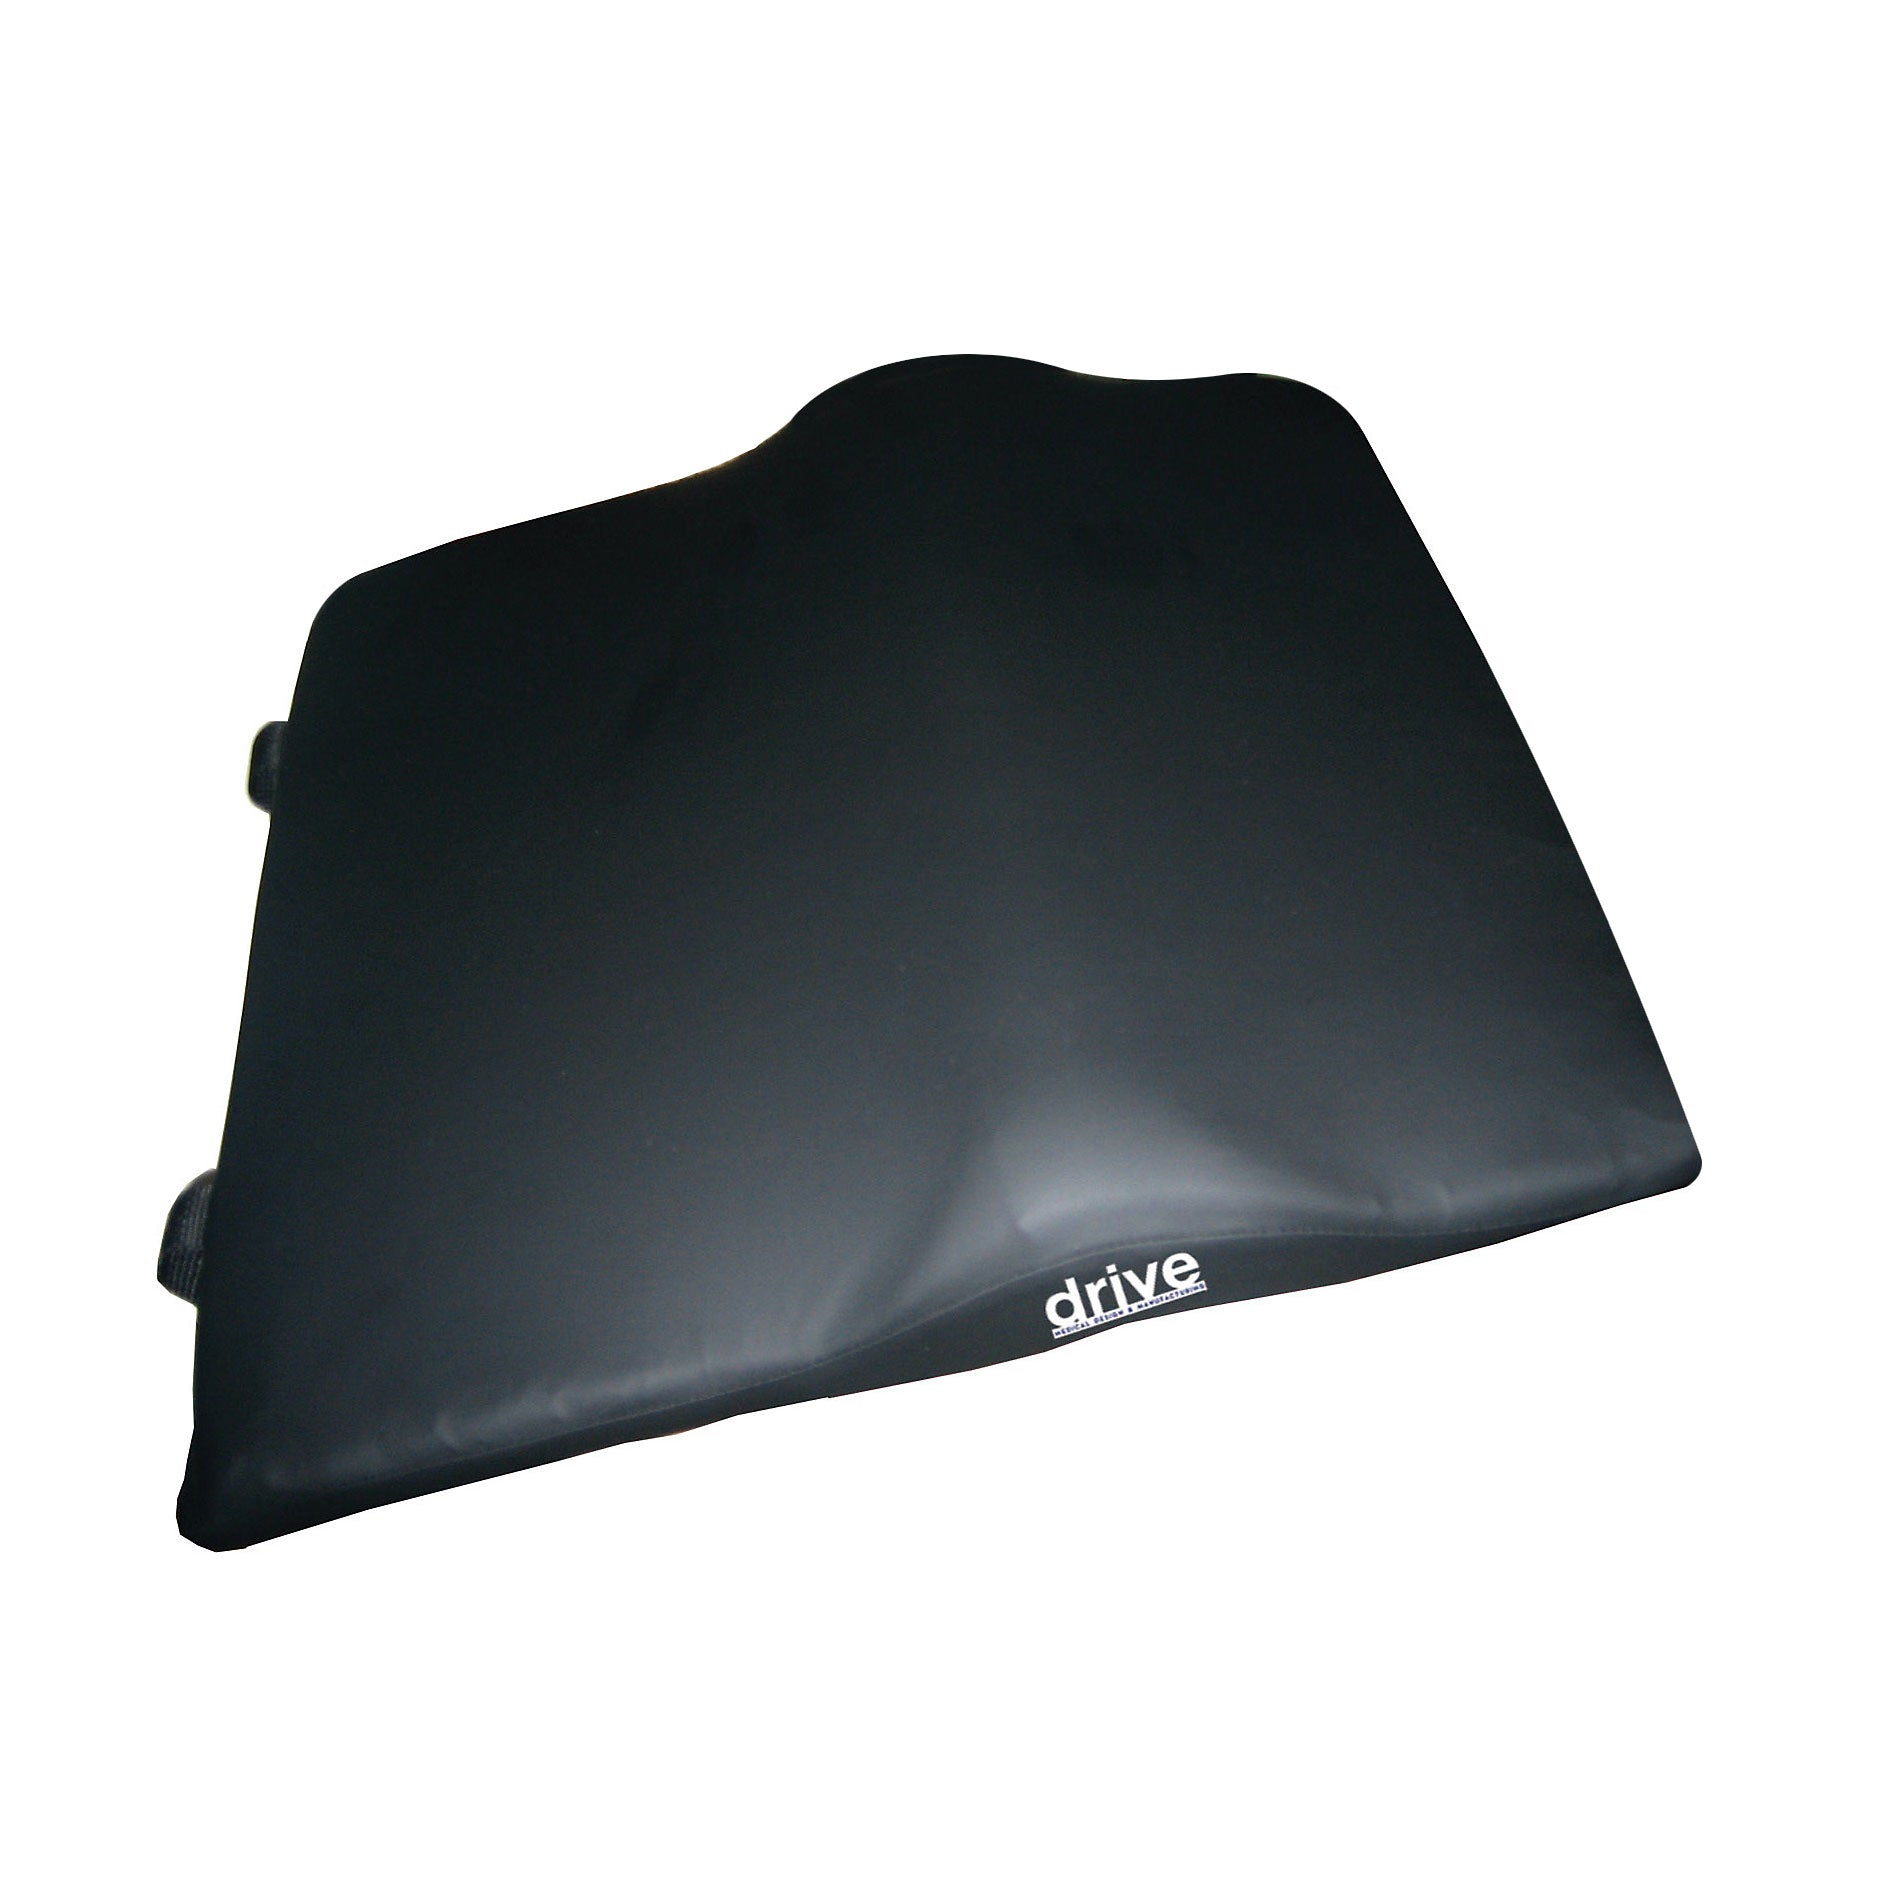 Drive Wheelchair Back Cushion with Lumbar Support